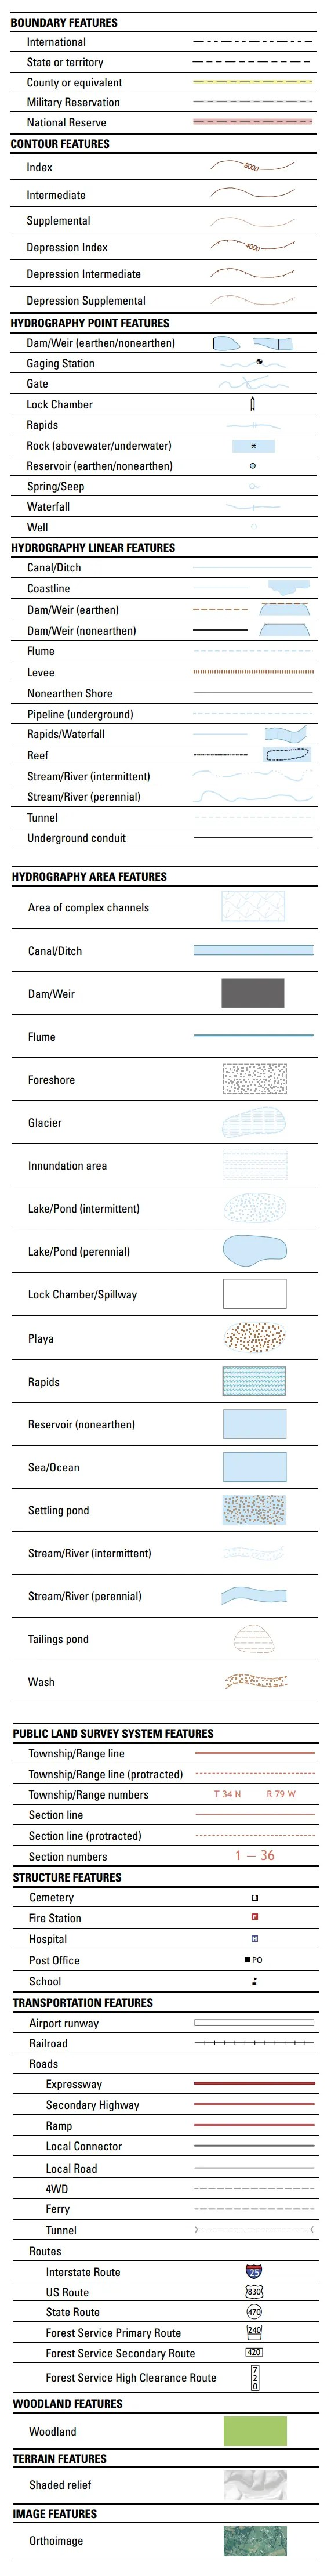 Table of topographic map symbols